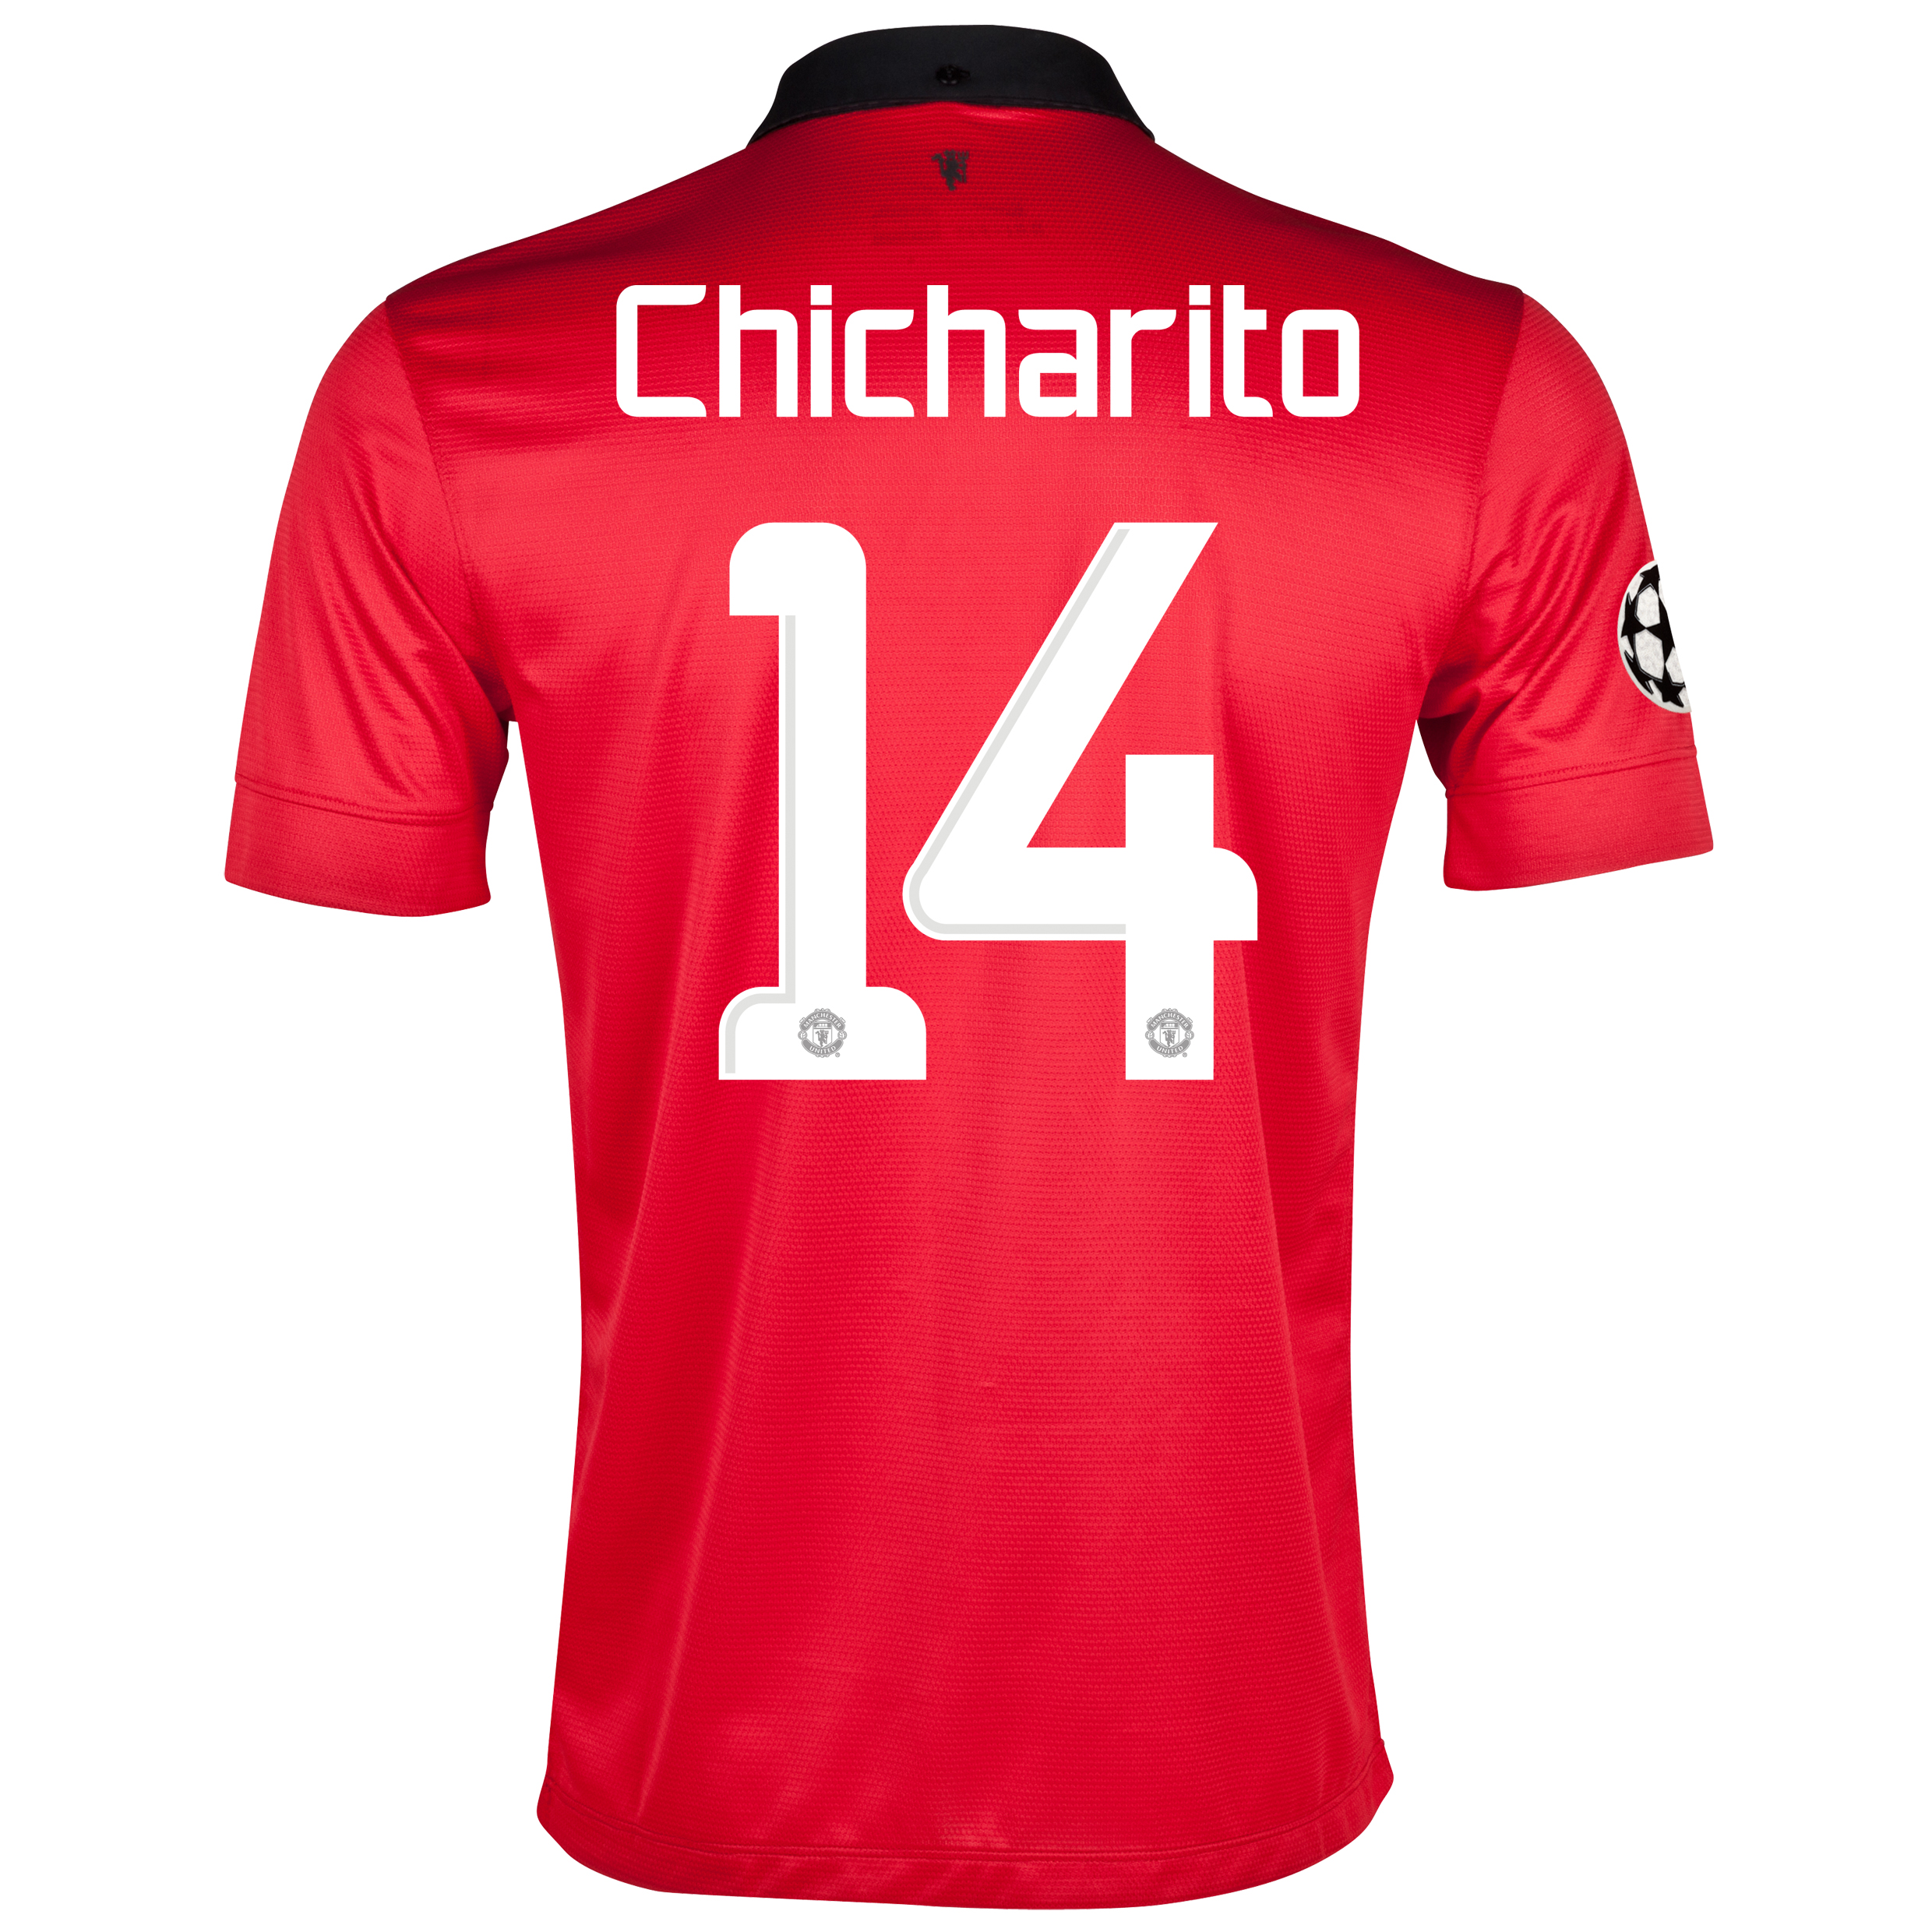 Manchester United UEFA Champions League Home Shirt 2013/14 with Chicharito 14 printing